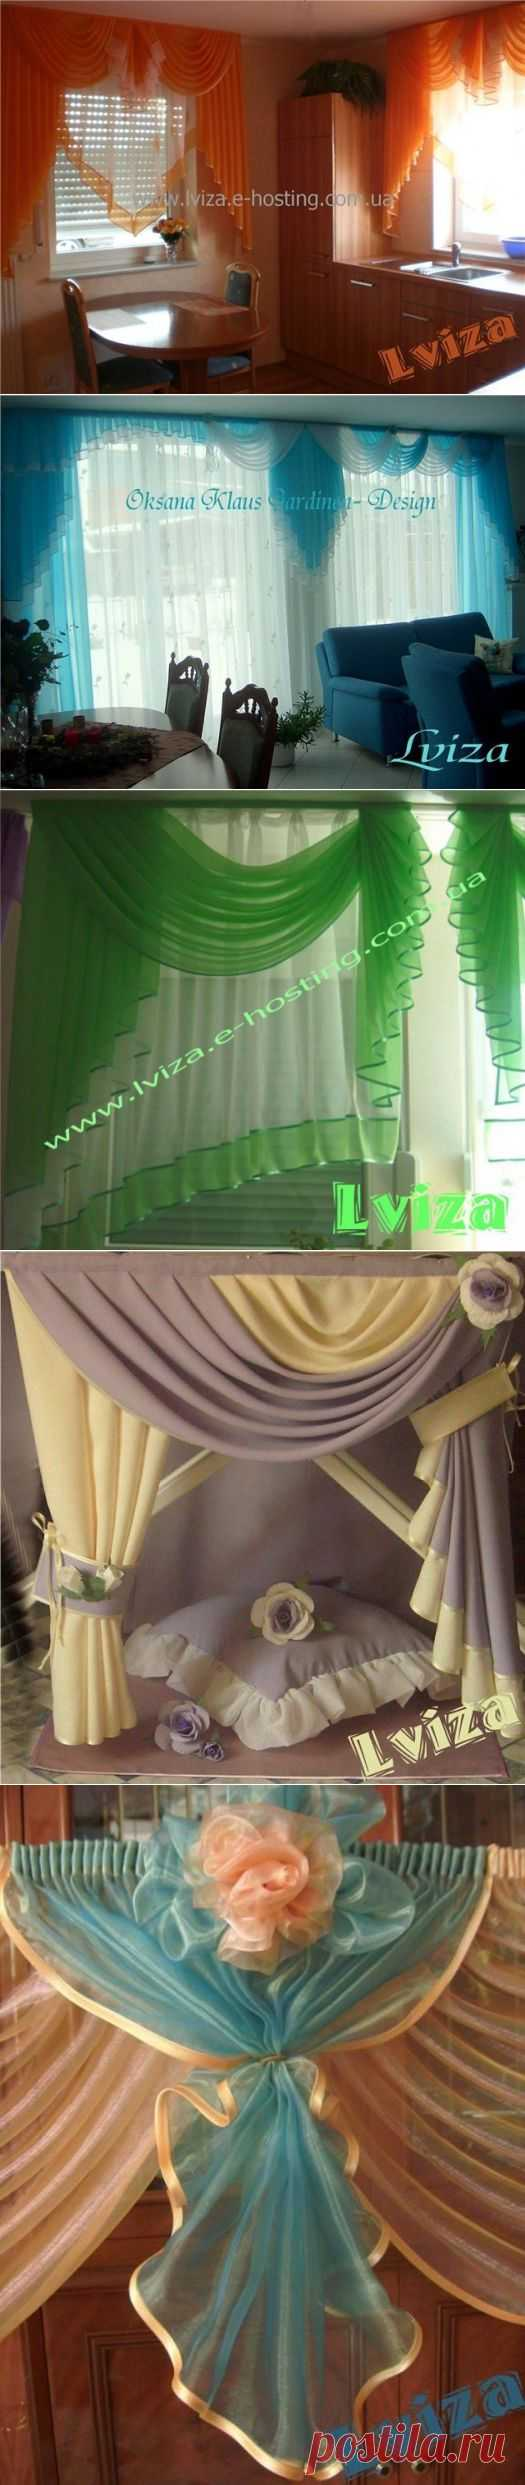 """CURTAINS from the designer Oksana Claus (Lviza)! The 40th mix models bright, easy and streaming! This is the romantic and talented skilled worker from Germany. Its style is recognized, works are faultless! On """"Осинке"""" it not the beginner, all know it under a nickname """"Львица""""."""